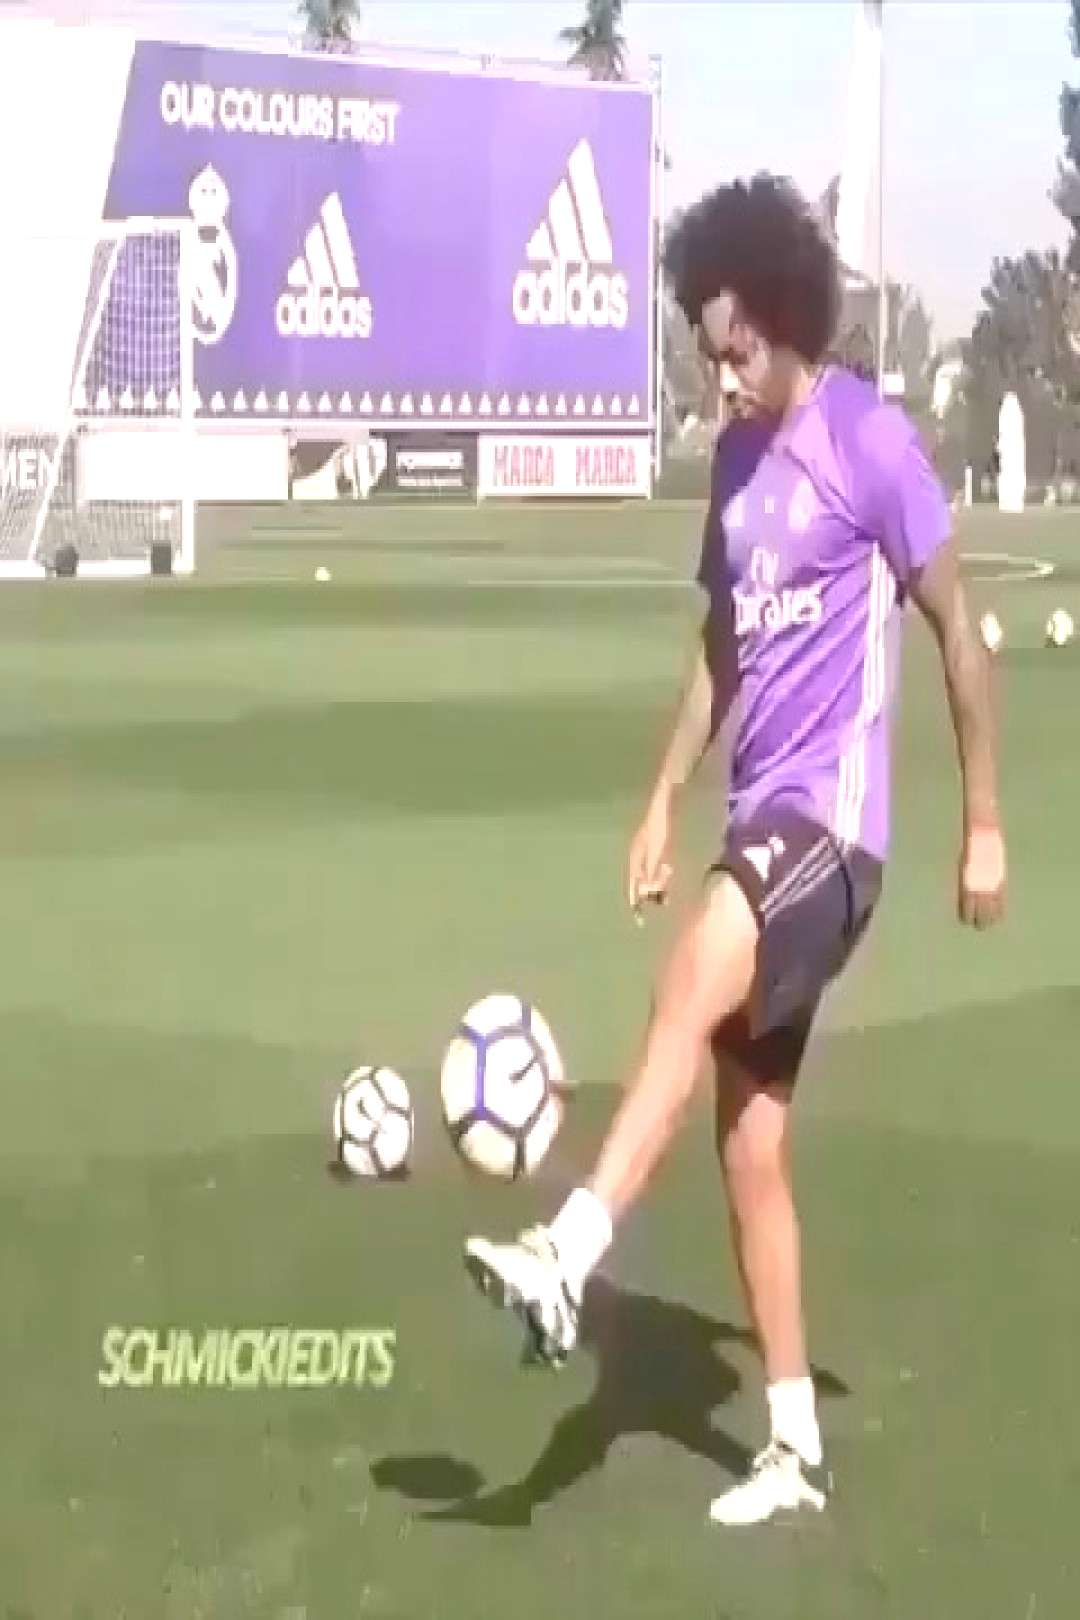 Rate Marcelos skills from 1-10 ............... ............... .